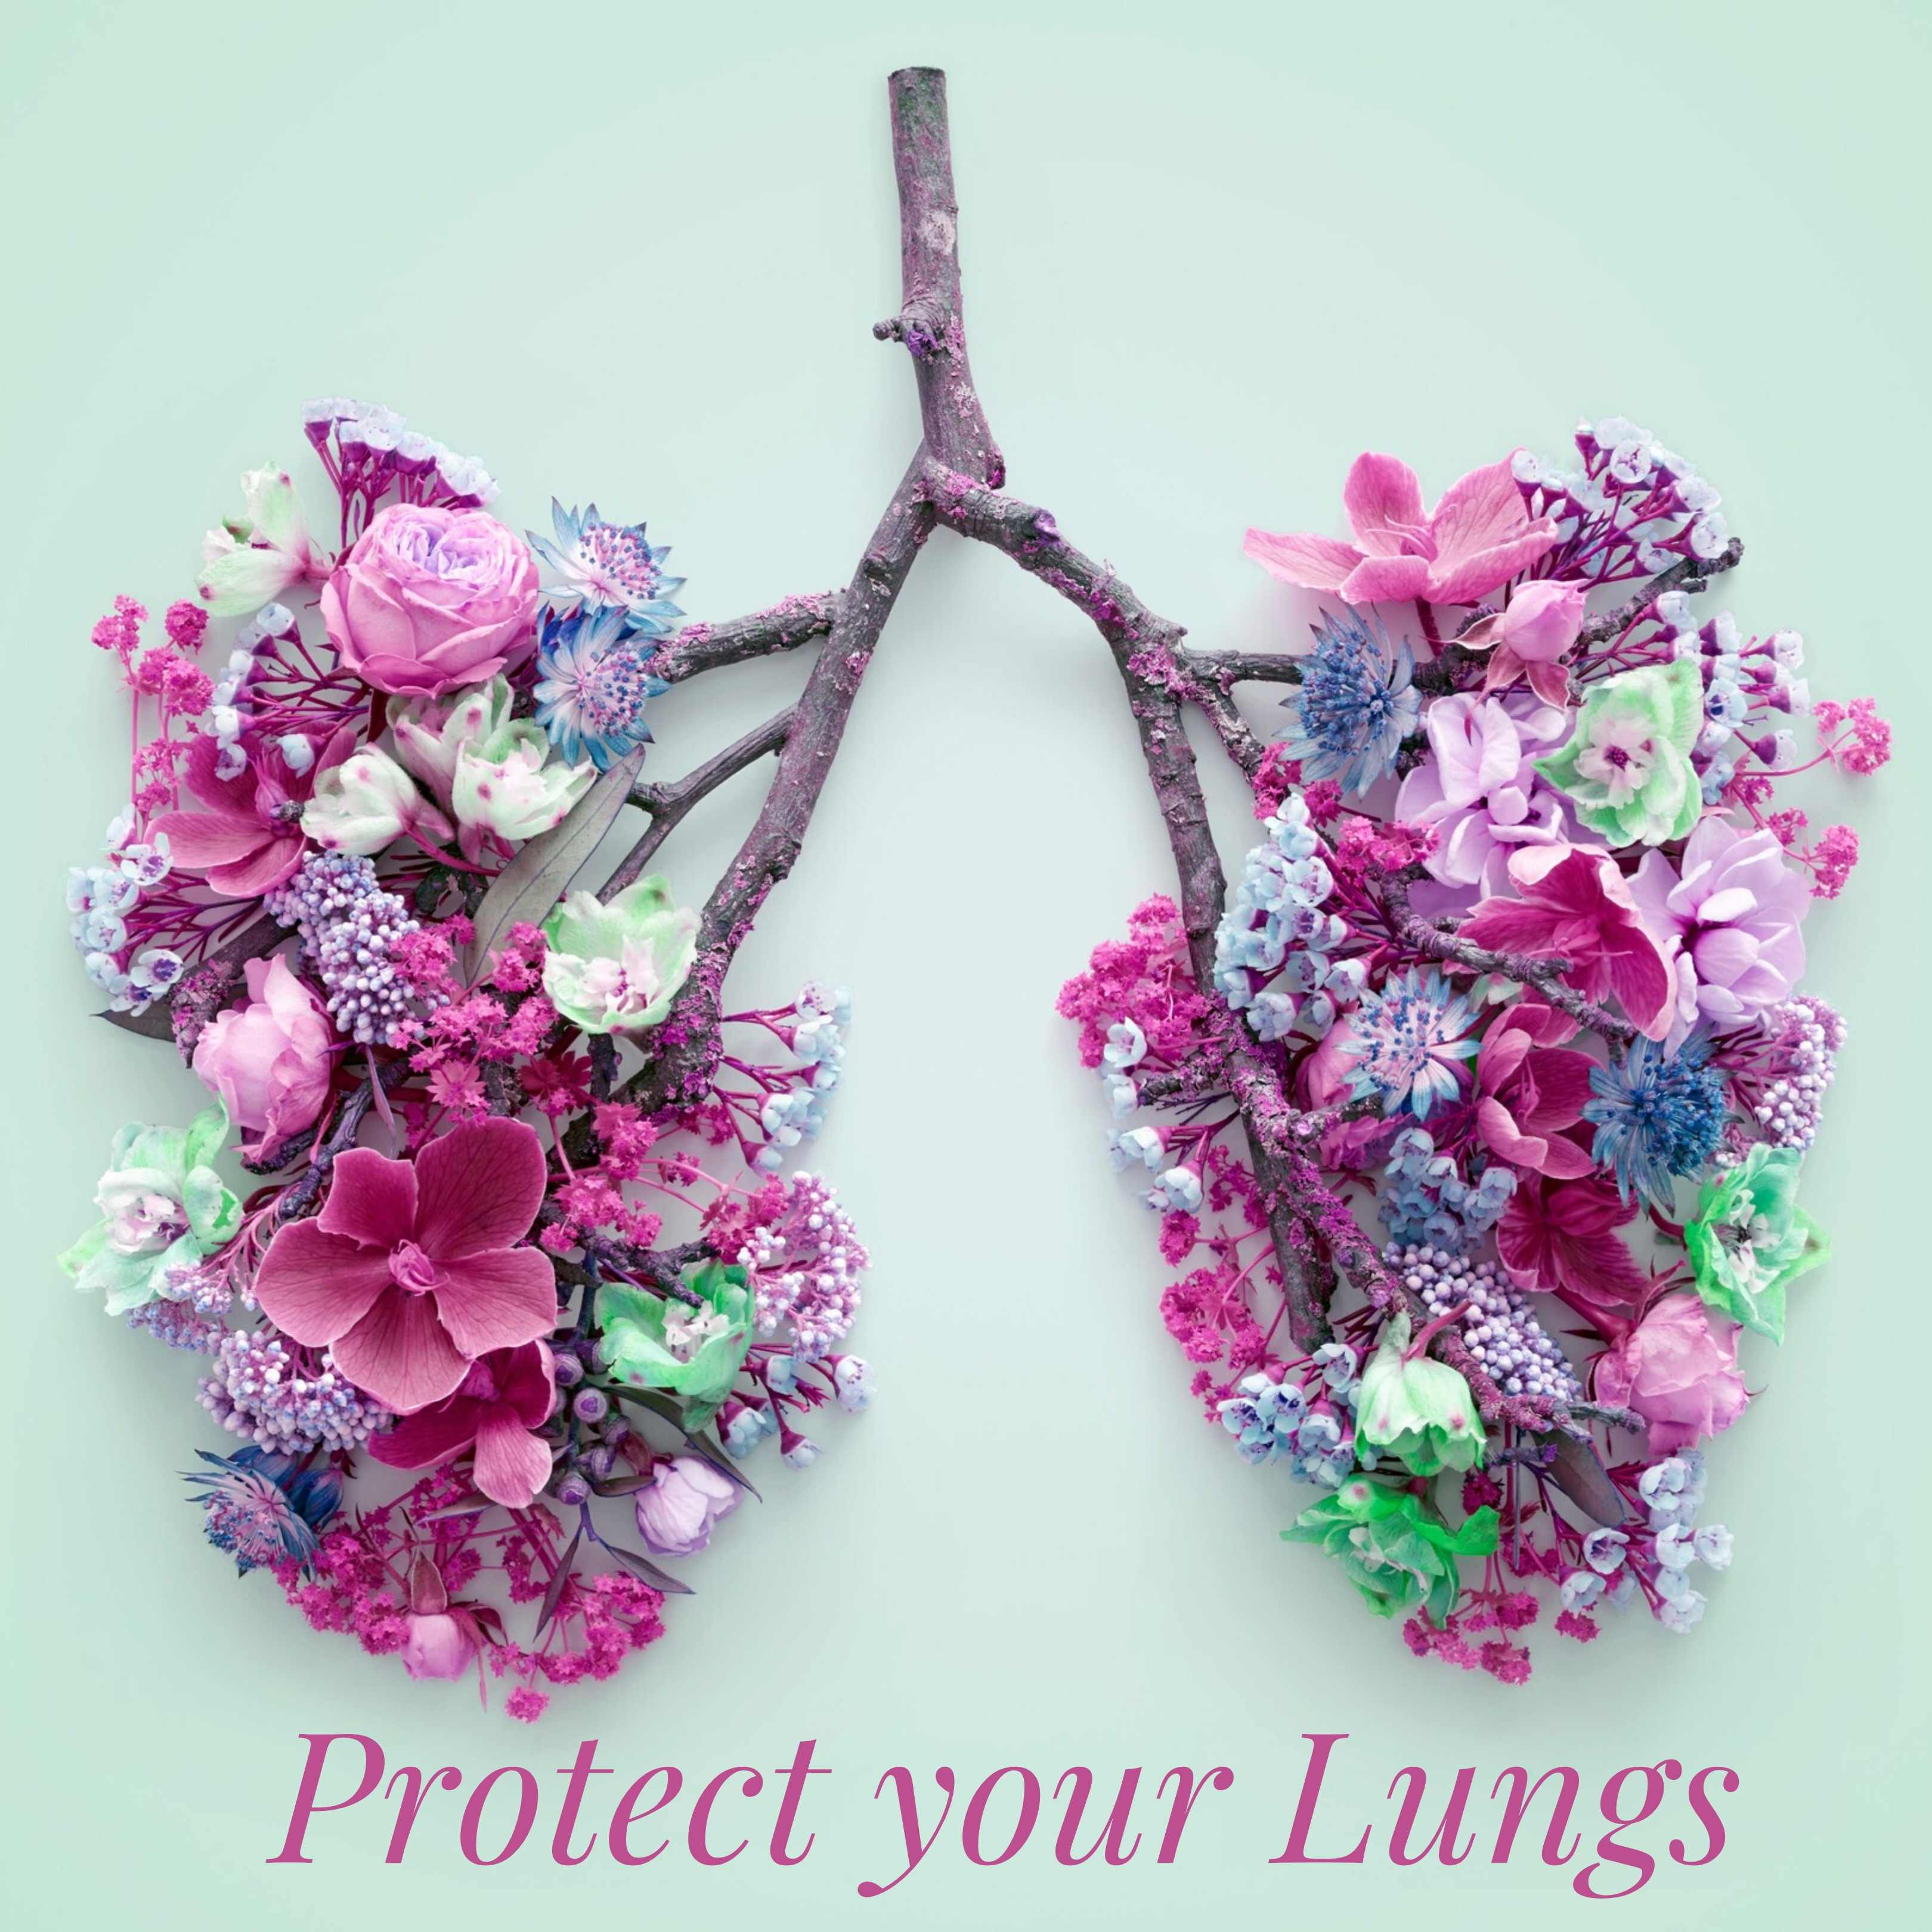 Protect Your Lungs